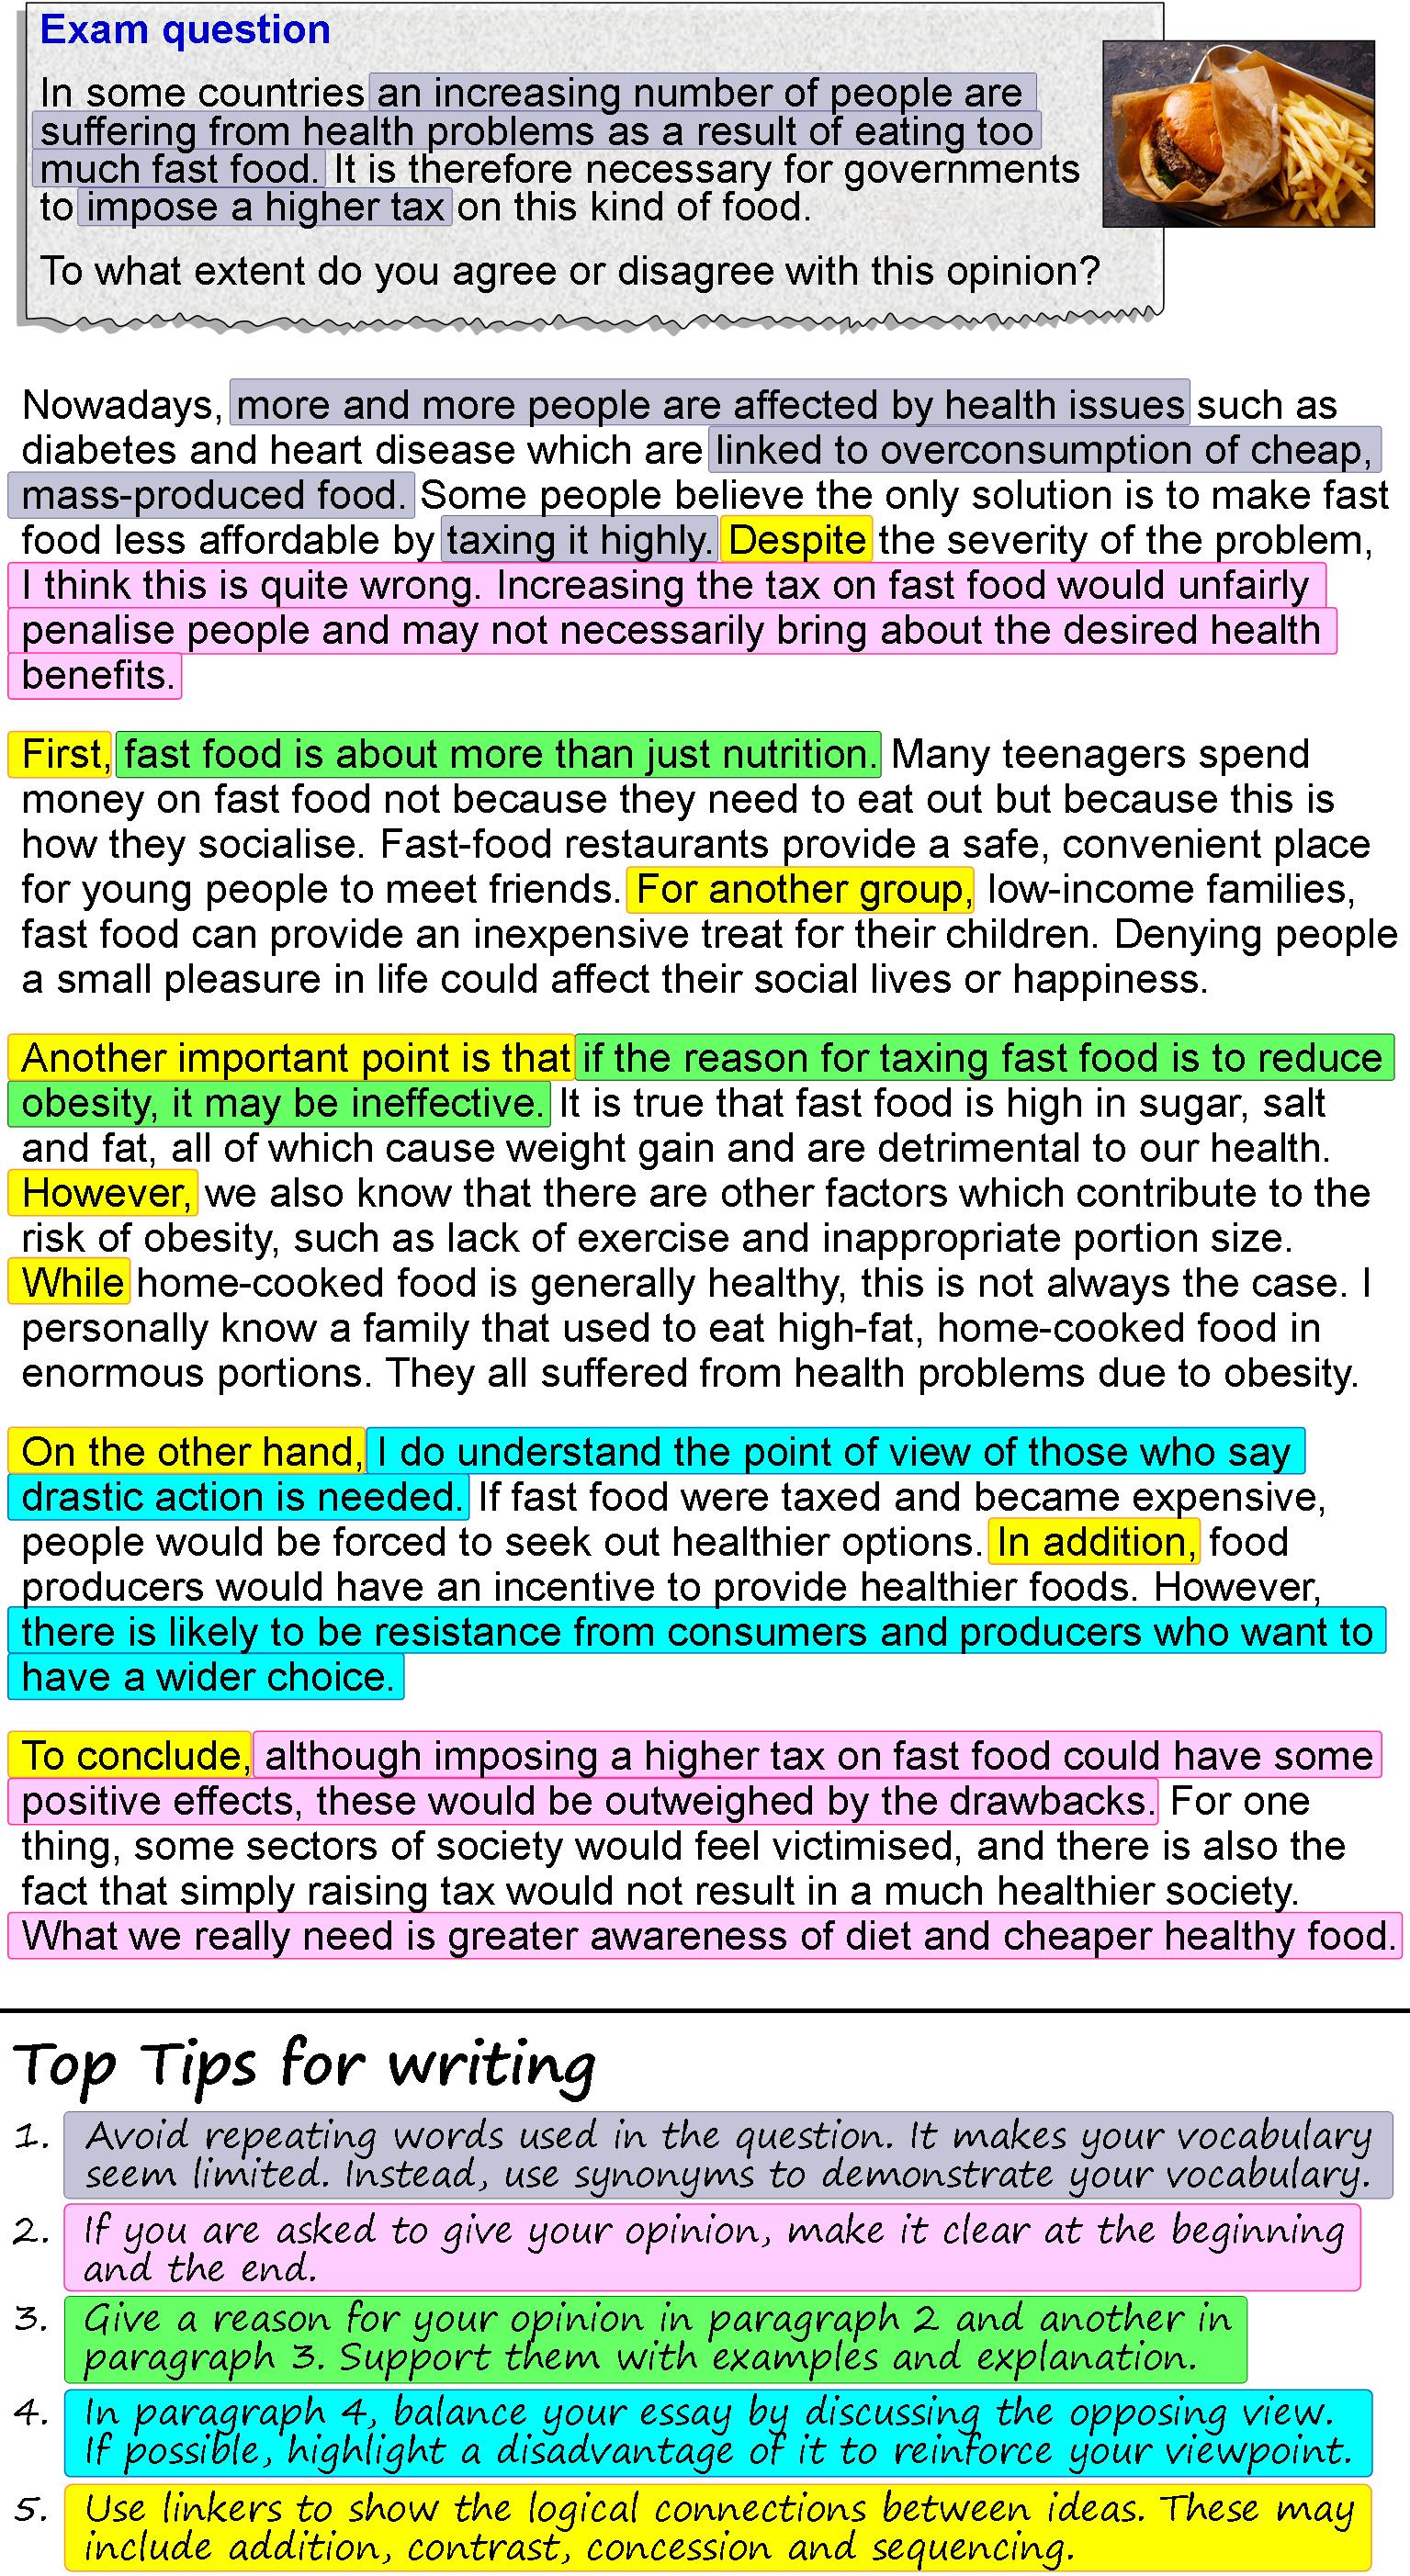 001 Essay Example Fast Food Culture An Opinion About 4 Frightening In Tamil India Full